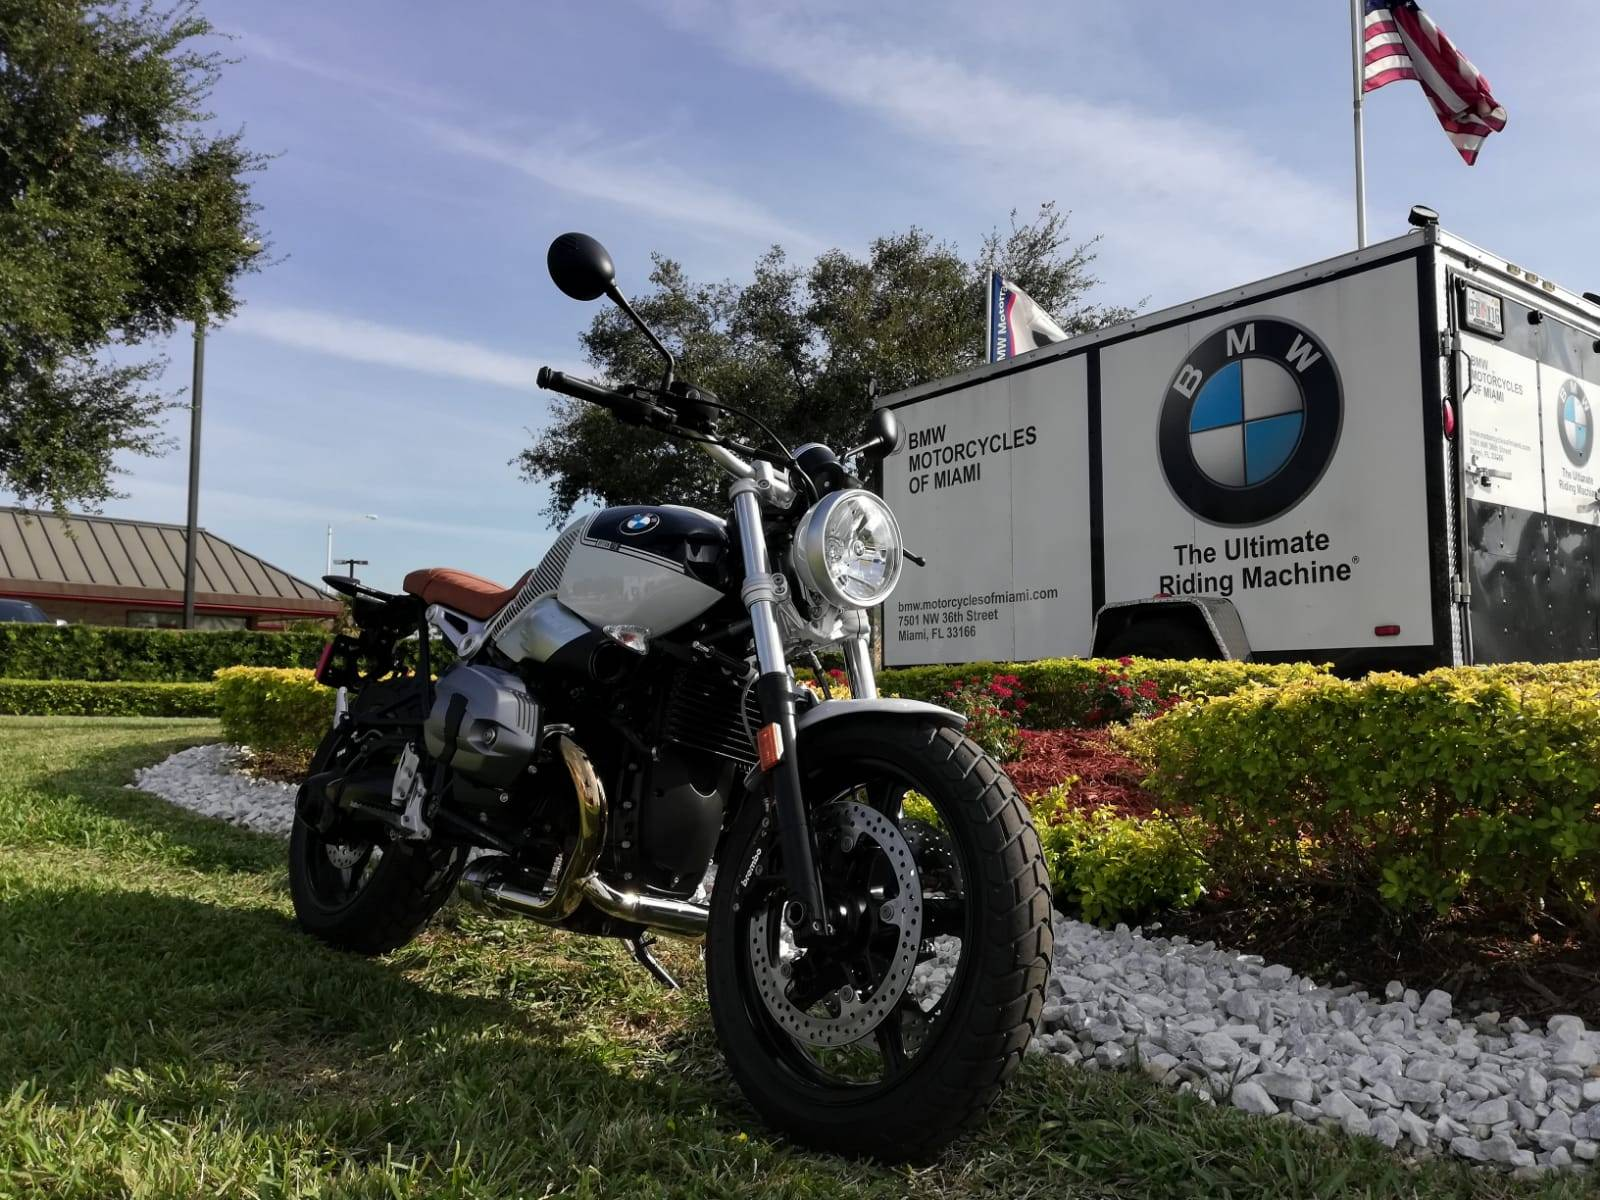 New 2019 BMW R nine T Scrambler for sale, BMW Scrambler for sale, BMW Motorcycle Scrambler, Scrambler, BMW Motorcycles of Miami, Motorcycles of Miami, Motorcycles Miami, New Motorcycles, Used Motorcycles, pre-owned. #BMWMotorcyclesOfMiami #MotorcyclesOfMiami. - Photo 10